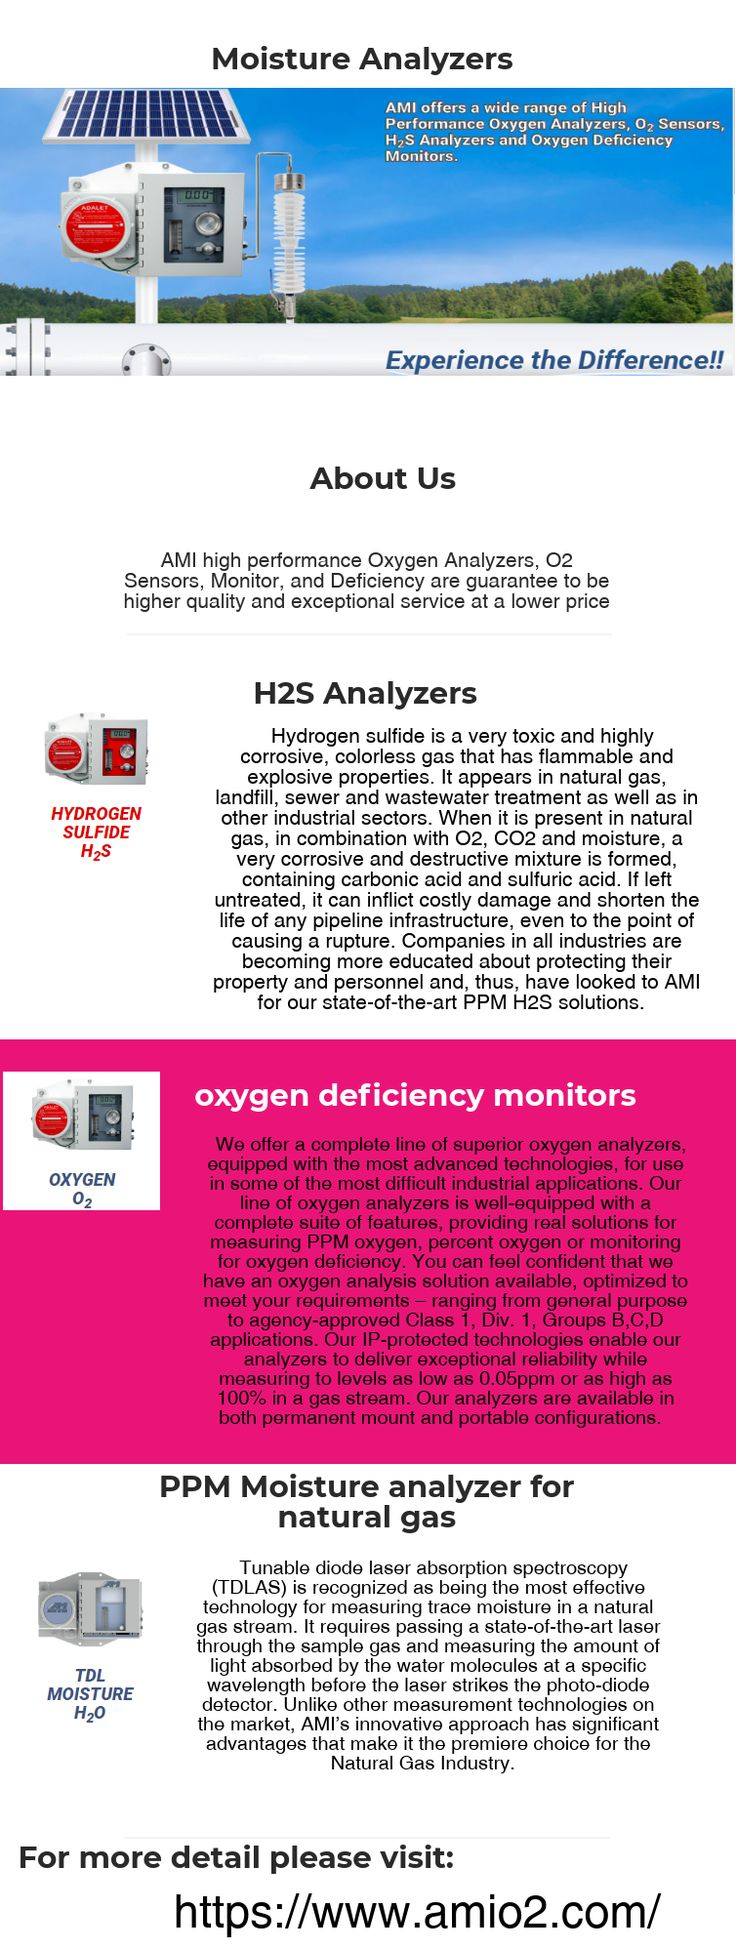 AMI high performance Oxygen Analyzers, O2 Sensors, Monitor, and Deficiency are guarantee to be higher quality and exceptional service at a lower price